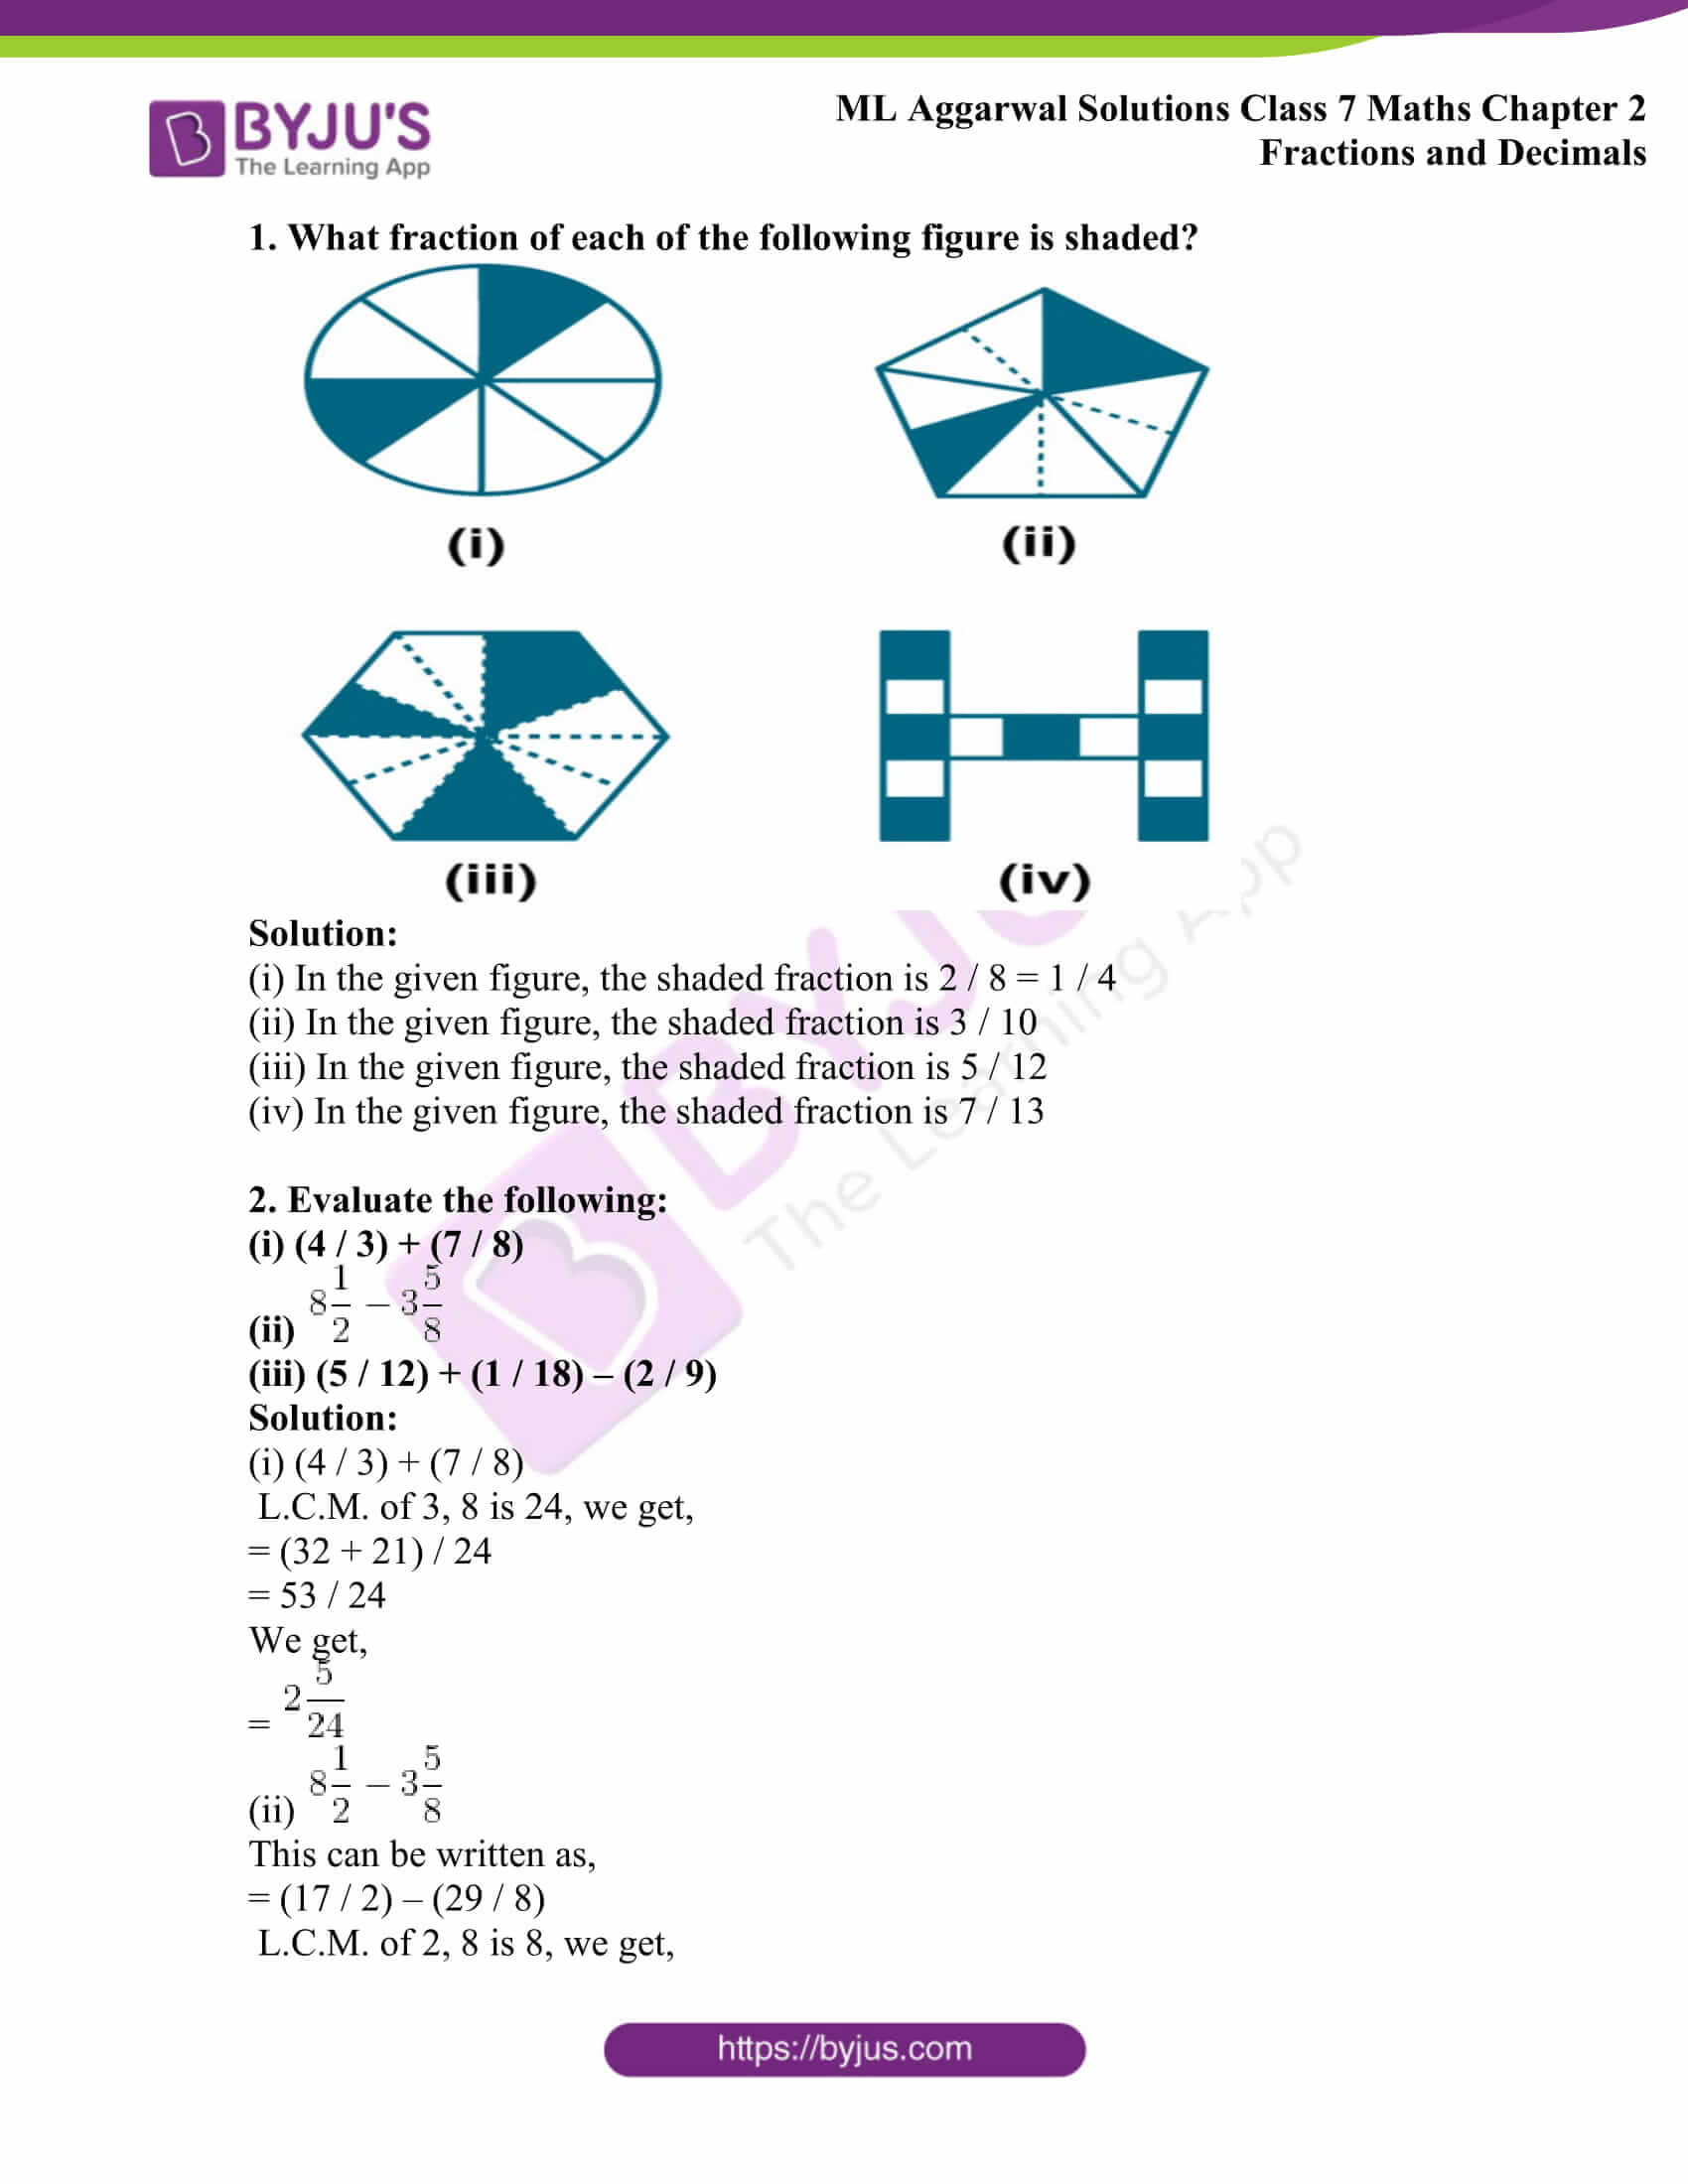 ml aggarwal sol class 7 maths chapter 2 1